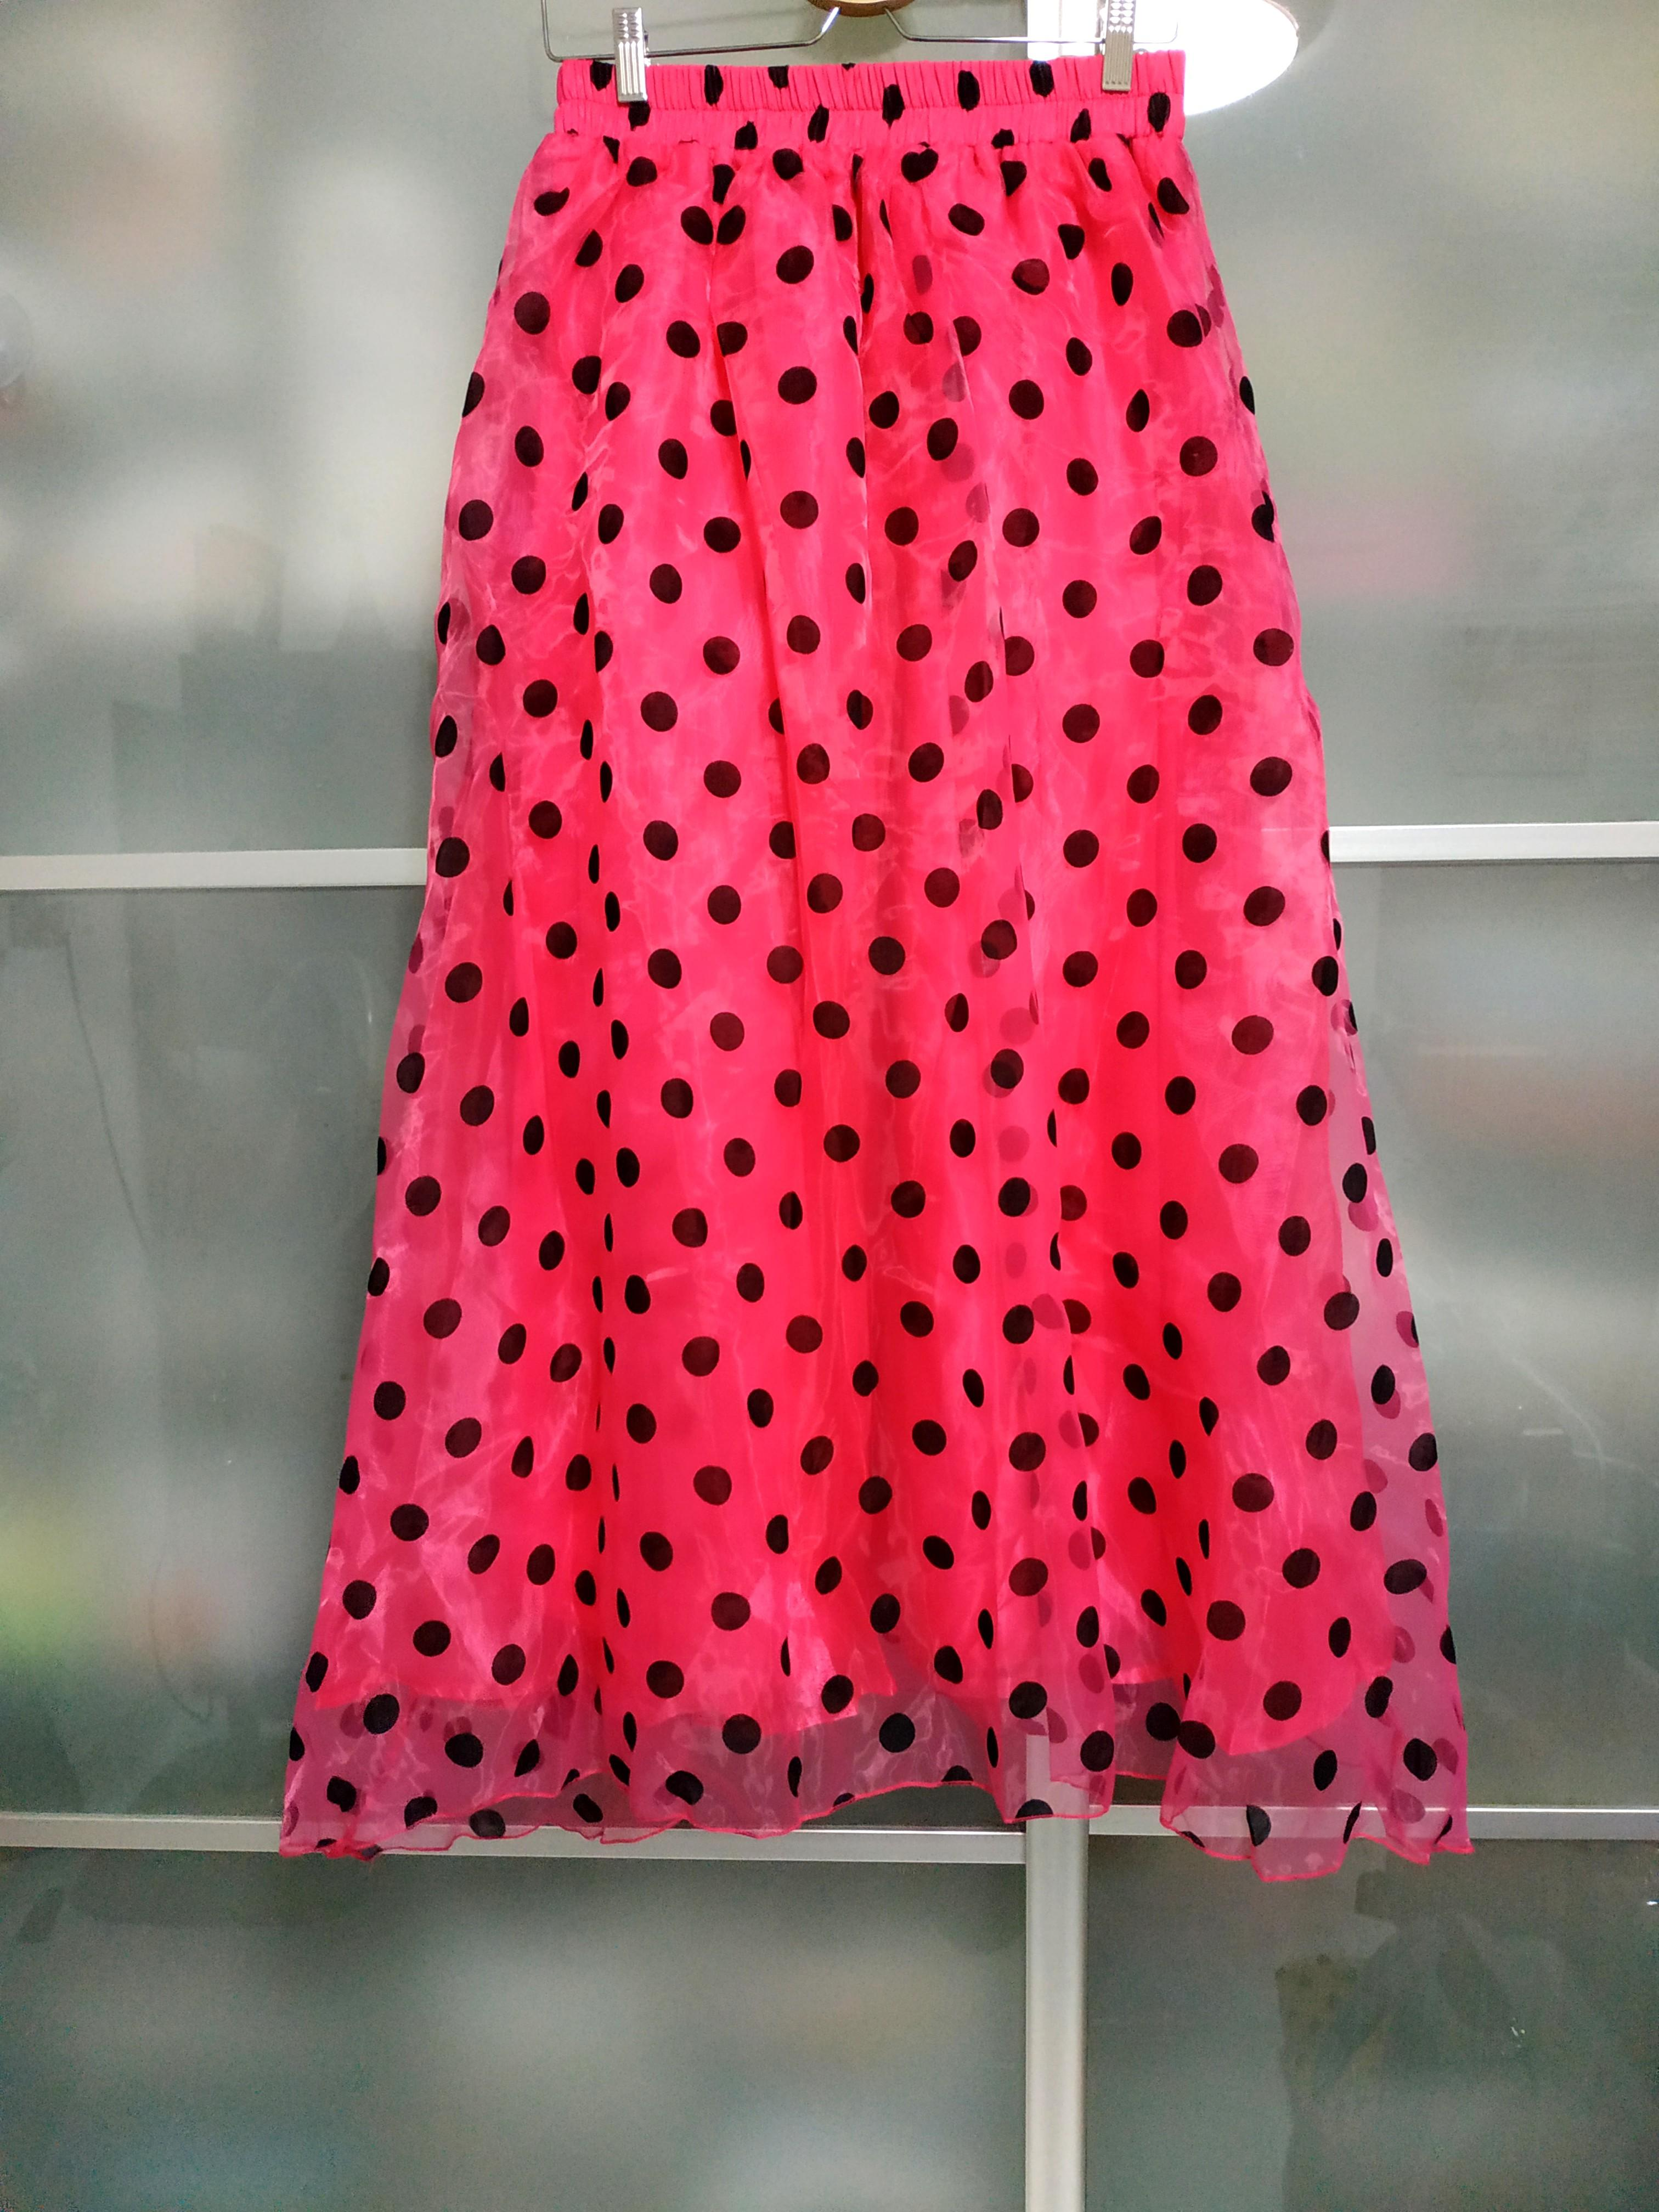 1 x pink polka dots skirts with lining at 1 low price and free delivery